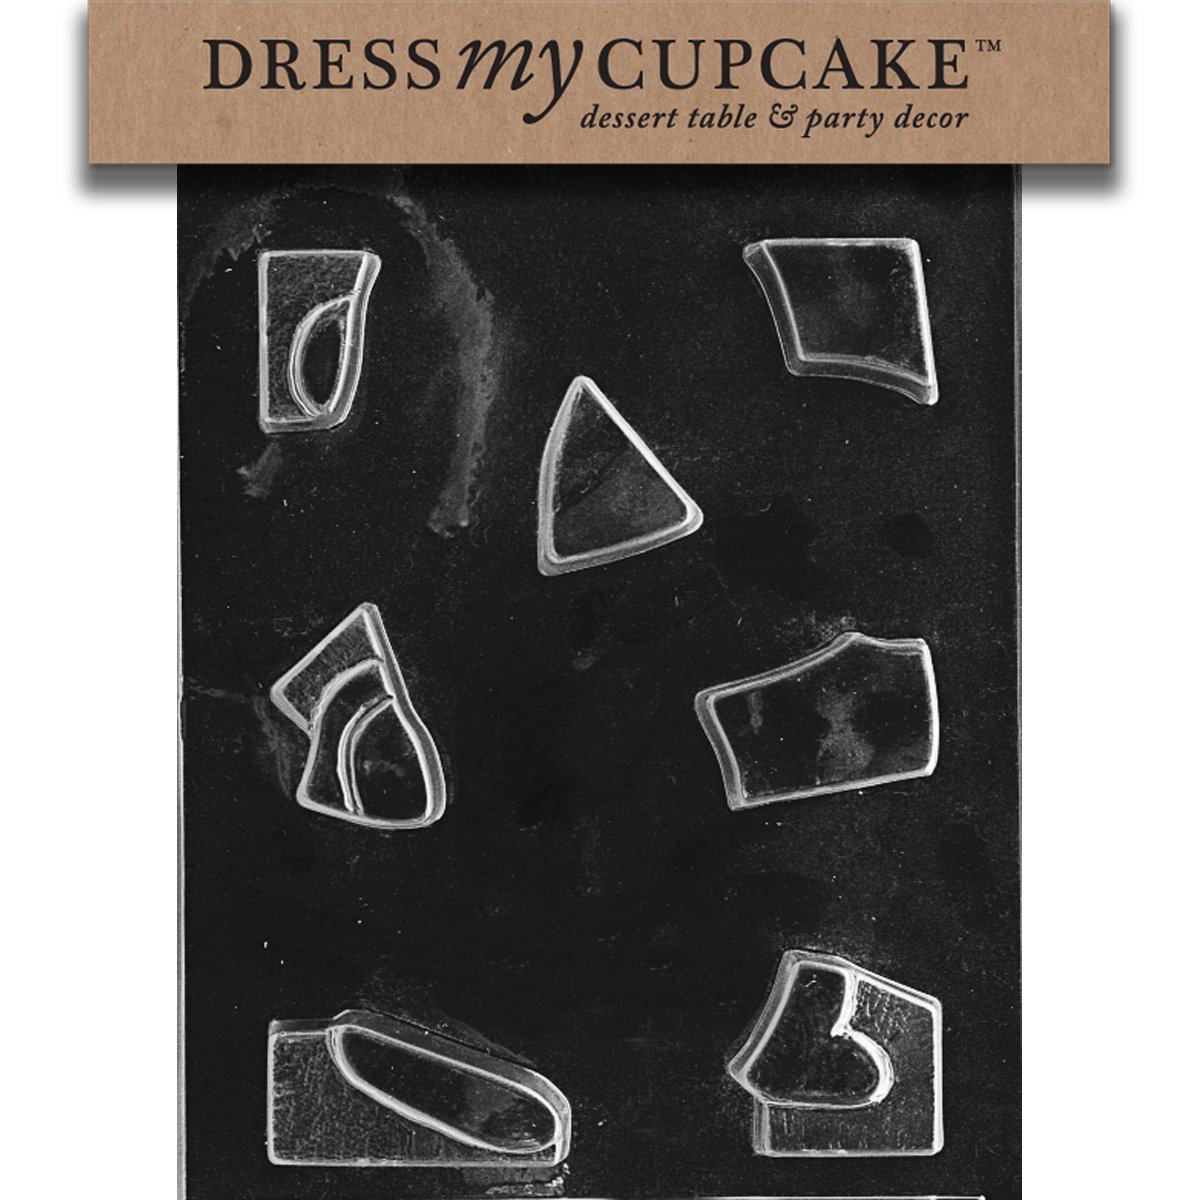 Dress My Cupcake DMCE209A Chocolate Candy Mold Jigsaw Puzzle Bunny-Piece 1 Easter